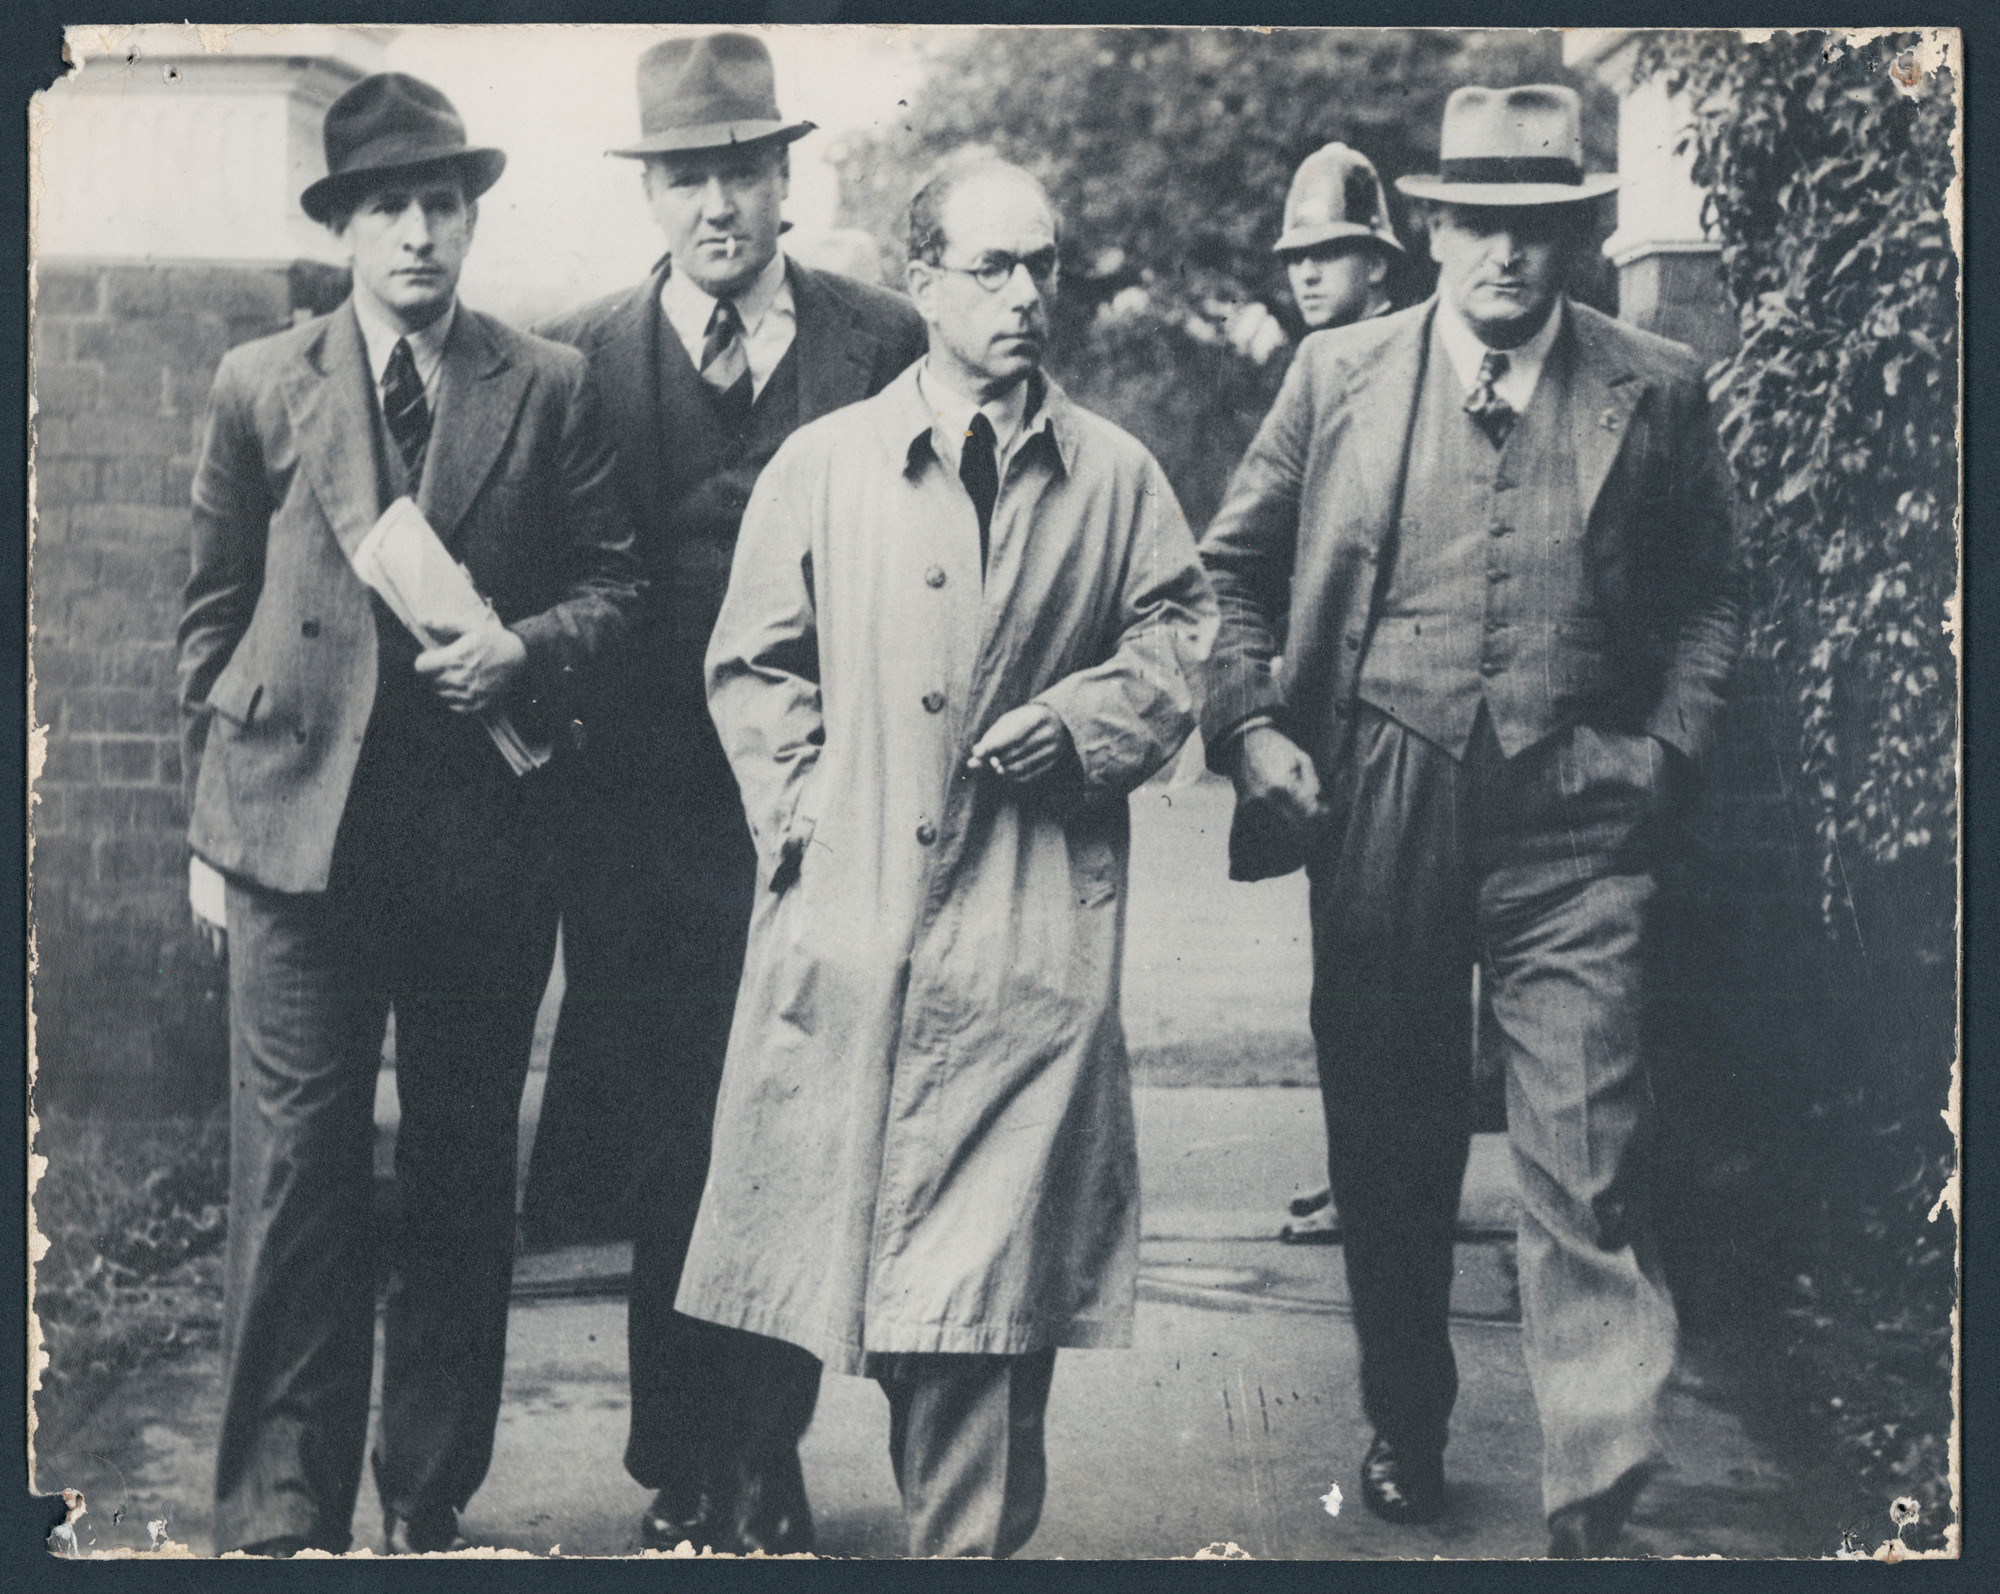 Photograph of Antonio Agostini with police in 1944